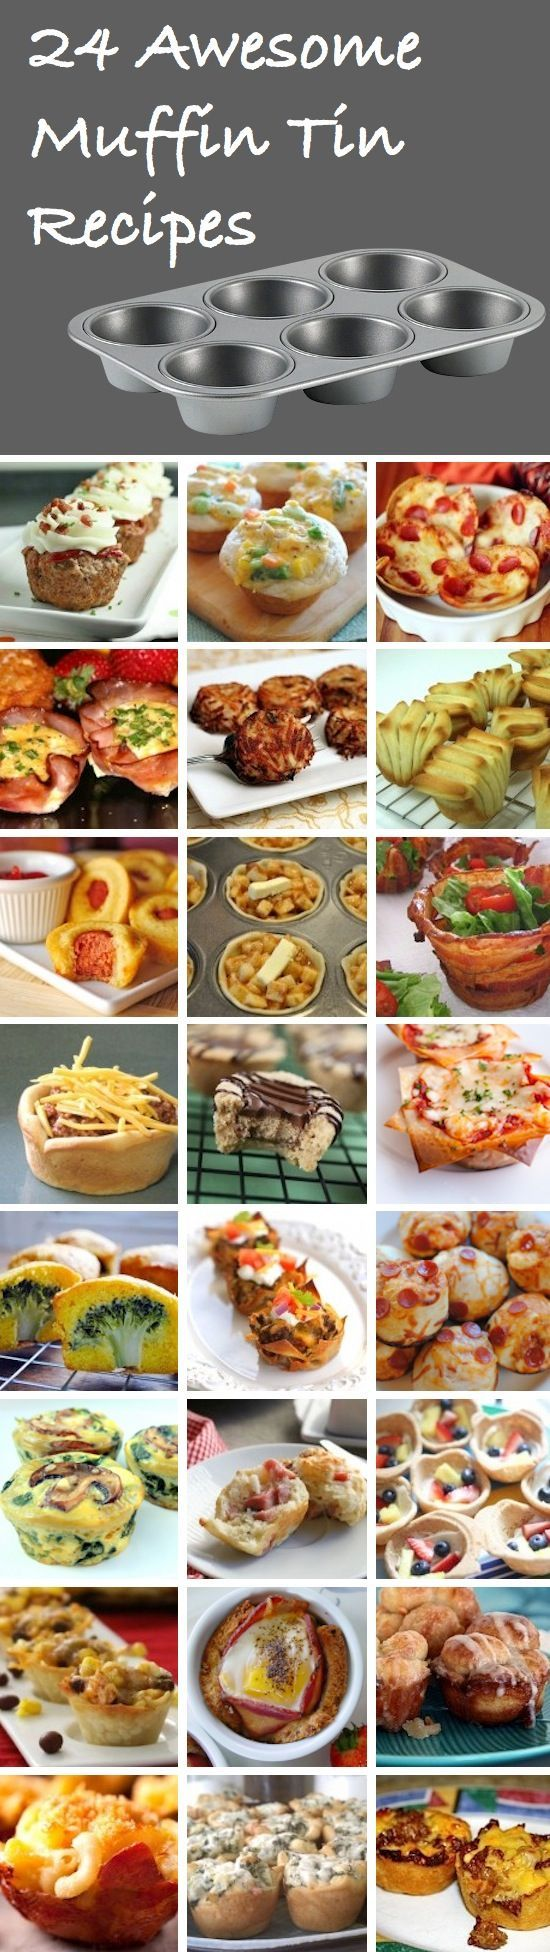 24 Awesome Muffin Tin Recipes - my favorite kind lol